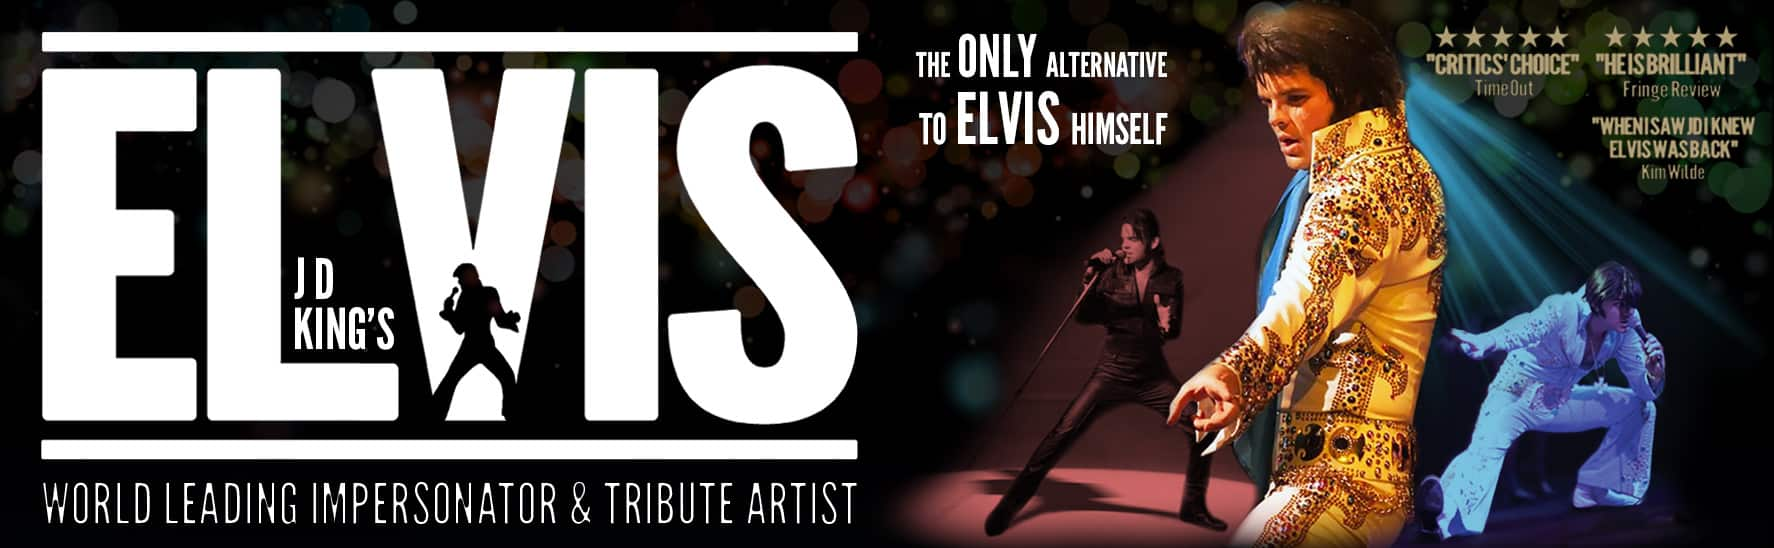 Elvis Impersonator JD King – World's Highest Rated Elvis Tribute Artist